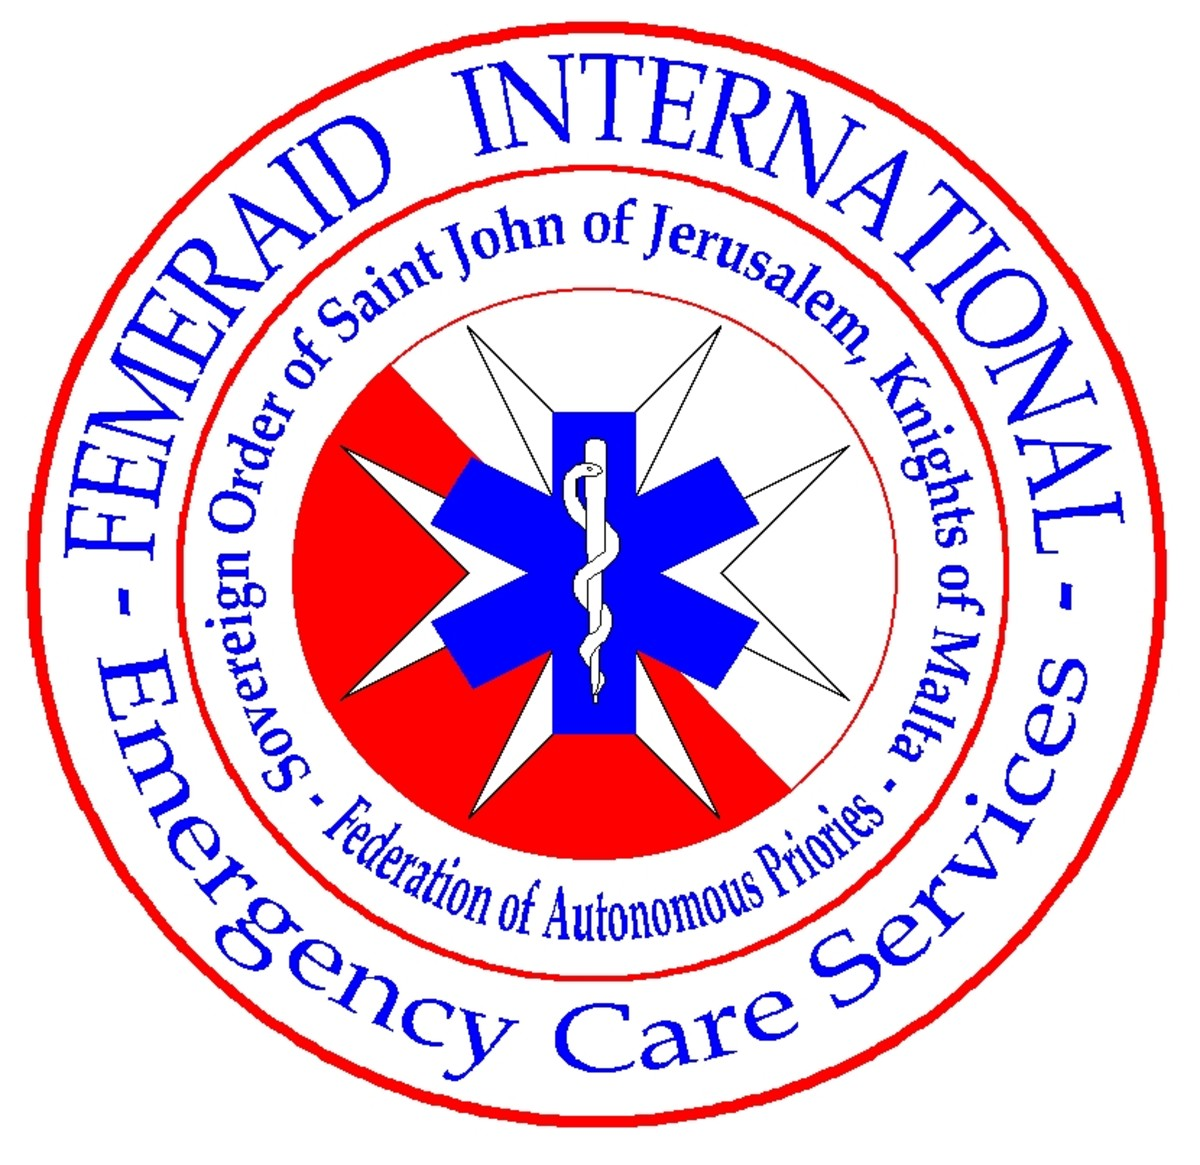 Femeraid International Logo. Sovereign Order of St. John of Jerusalem, Knights of Malta.